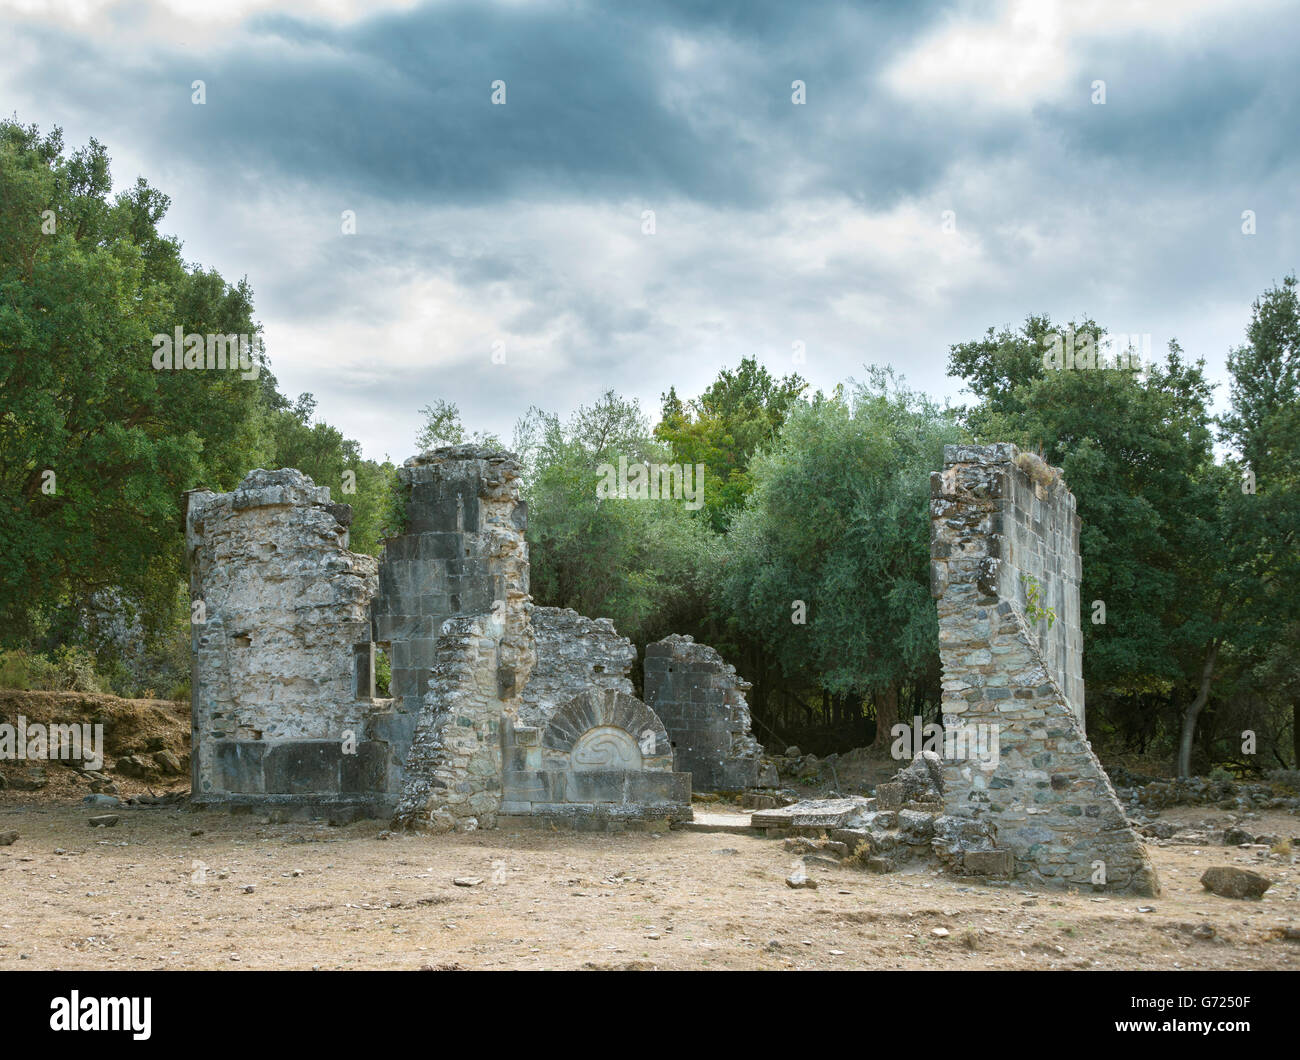 Ruin of the church of Santa Maria di Riscamone, Cloudy Sky, Valle-di-Rostino, Haute-Corse, Corsica, France - Stock Image